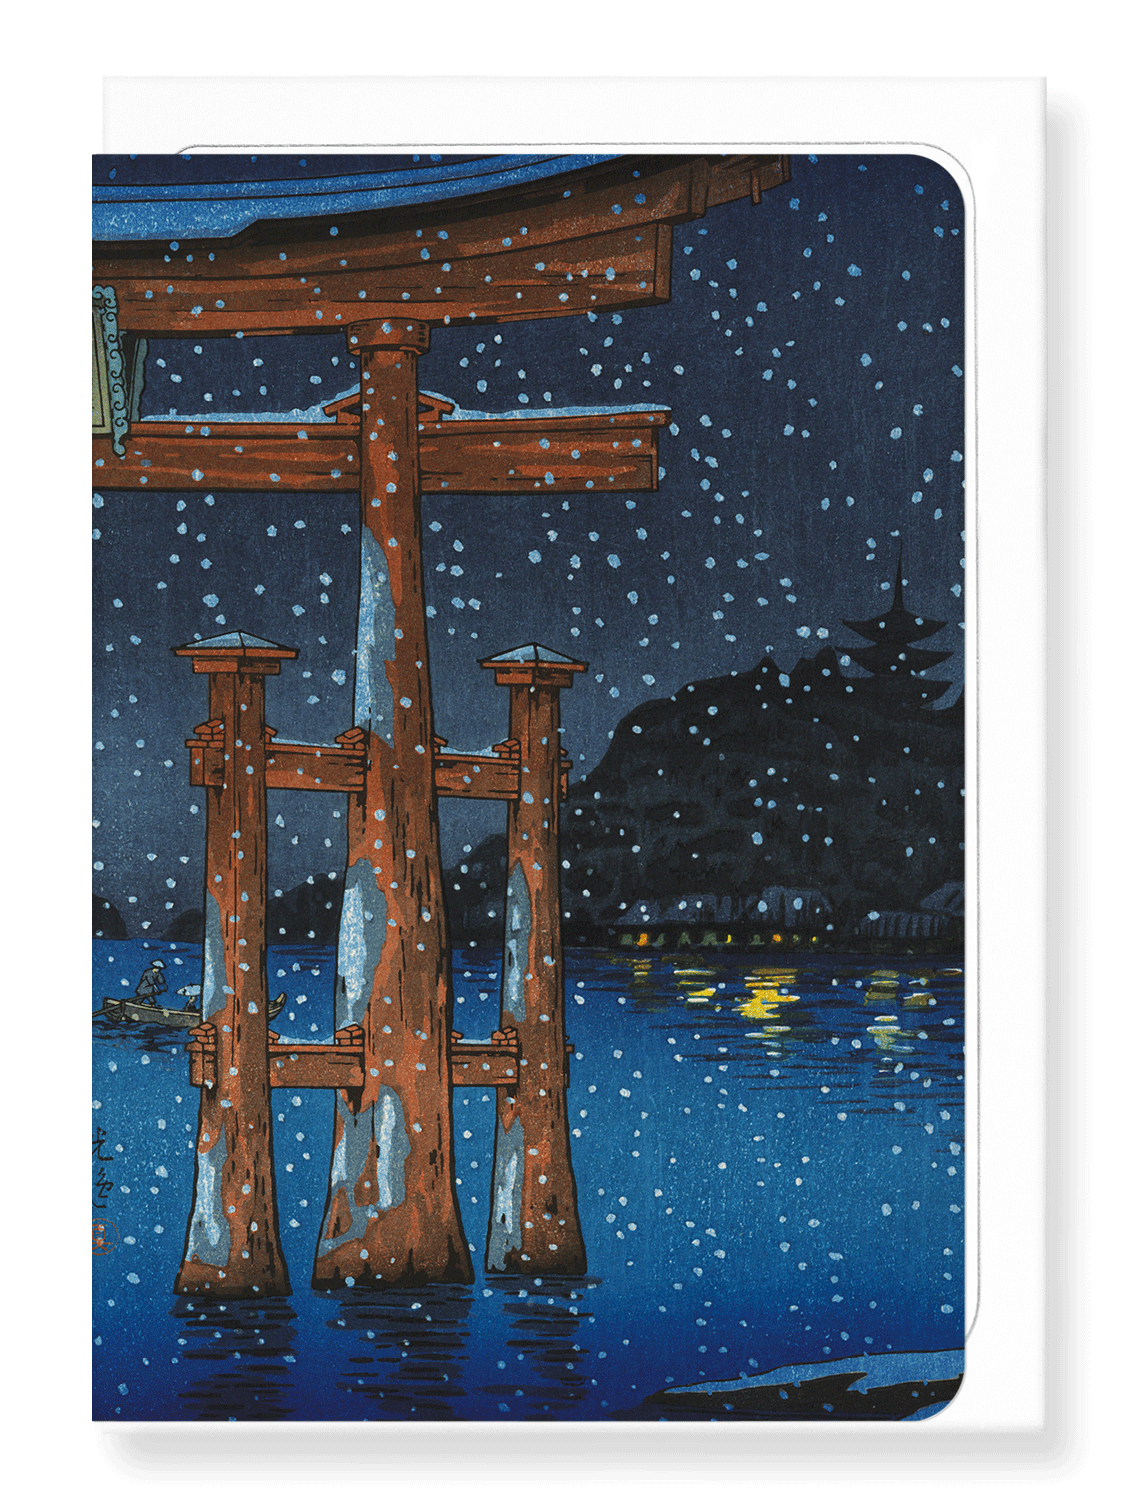 Ezen Designs - Miyajima snowy night - Greeting Card - Front